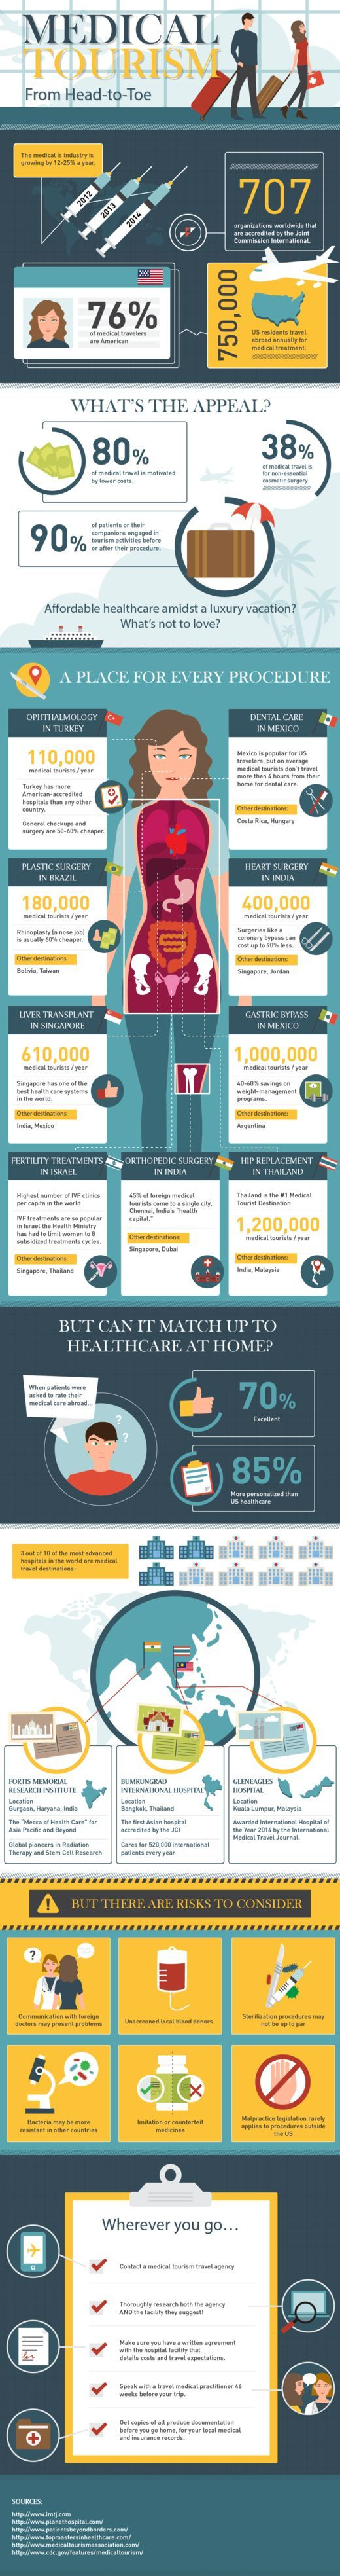 Some very interesting facts on this infographic! SkyMedicus can help you find the best places to visit for your procedure!